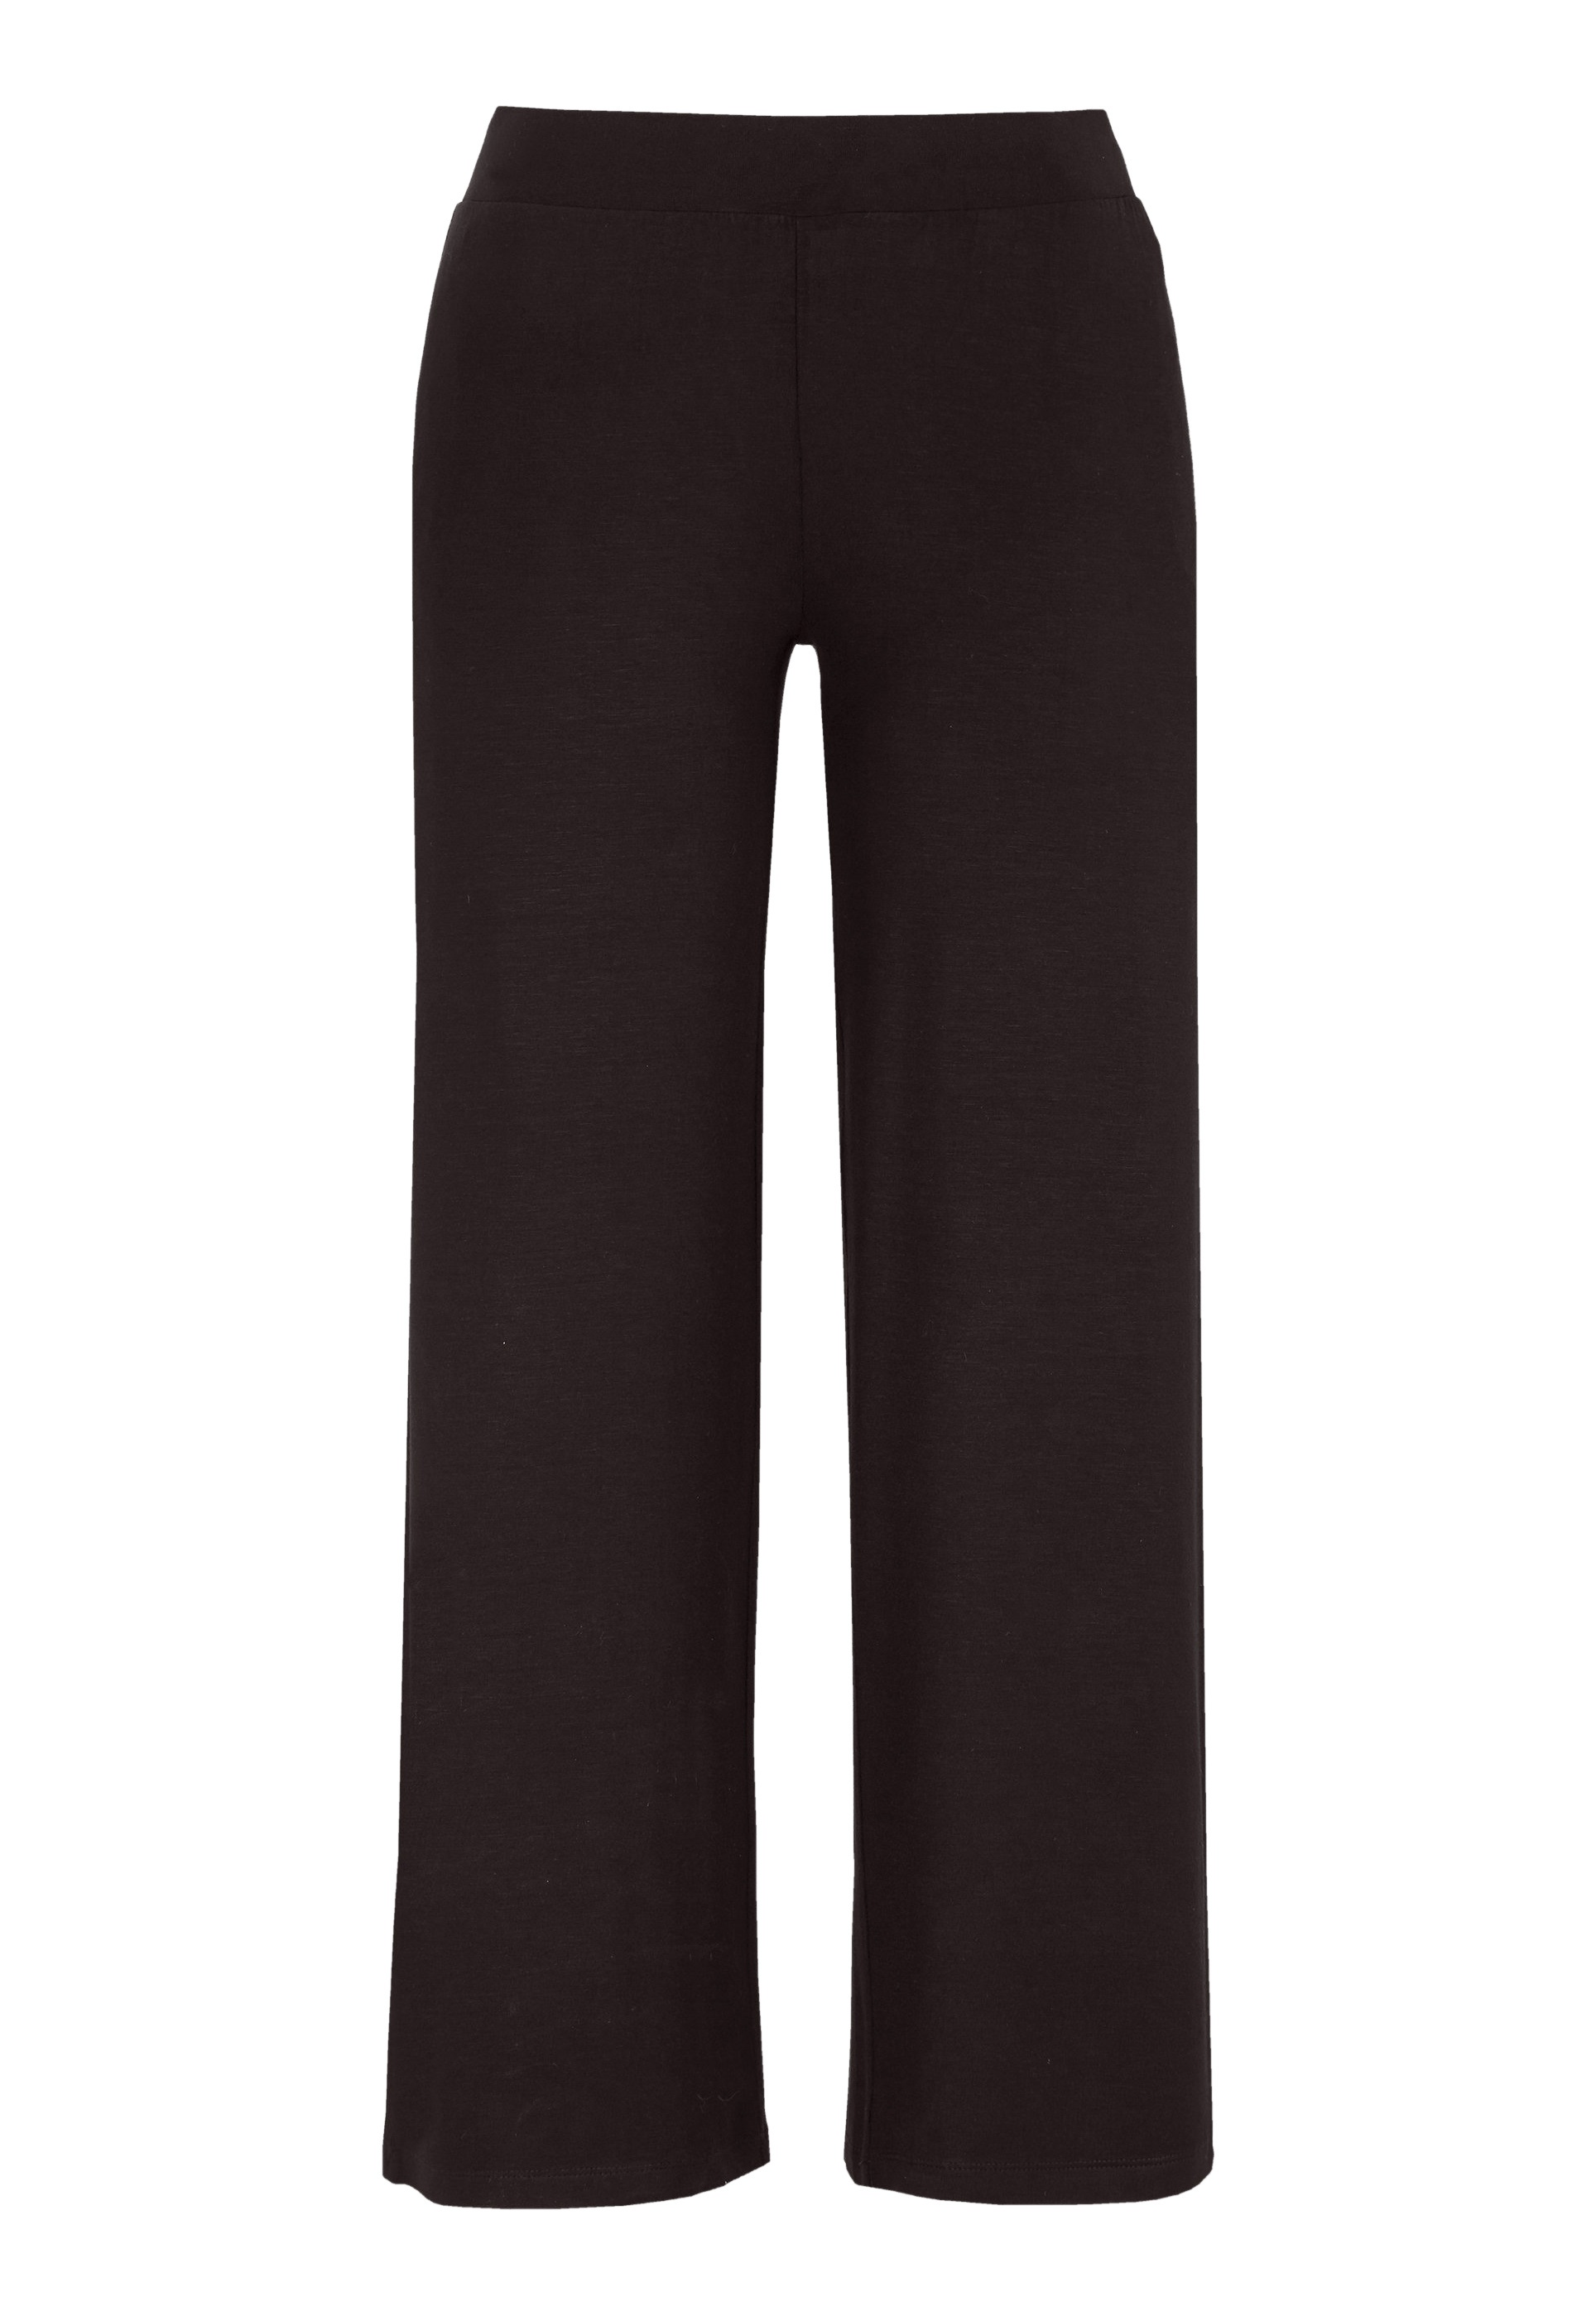 happy-holly-anne-tricot-pants-black_9